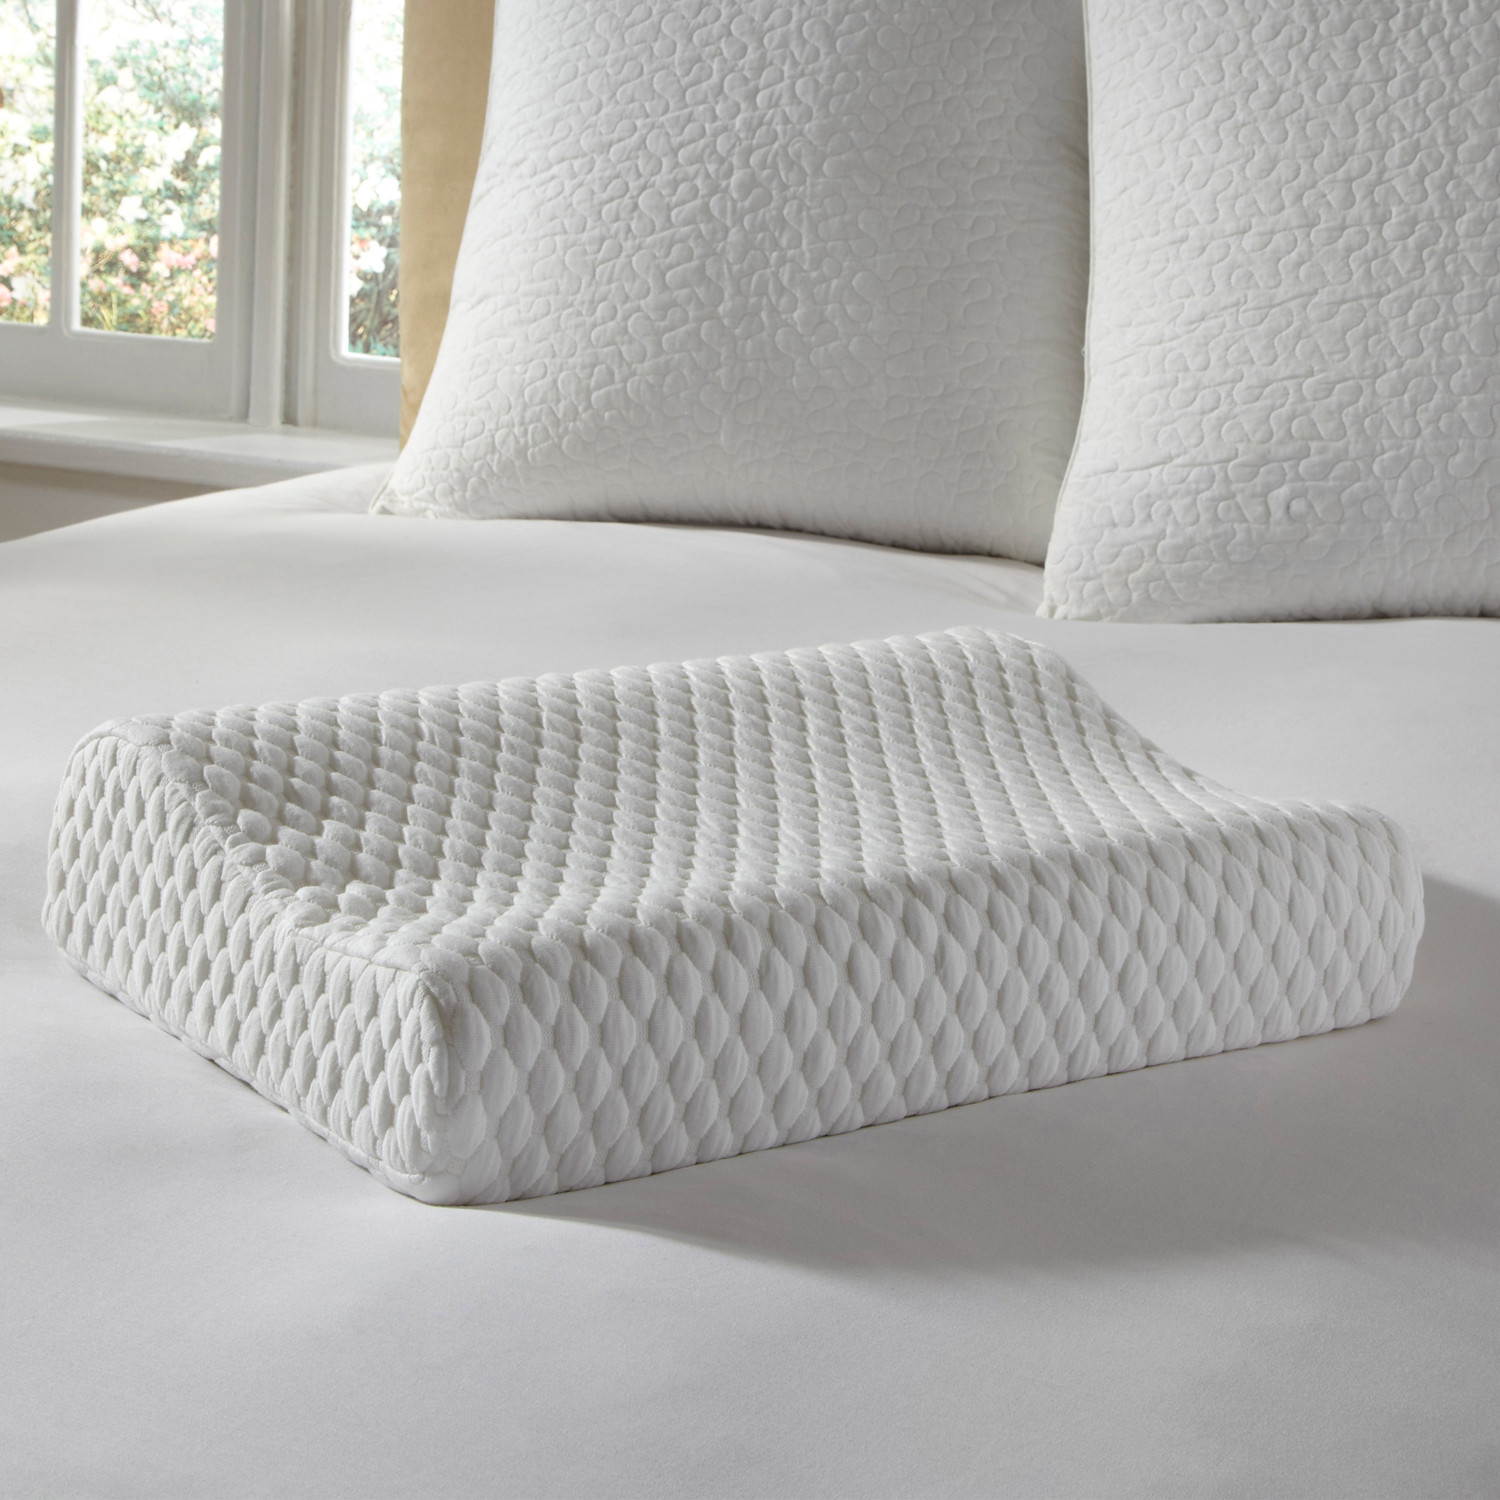 EUROPEUTIC Comfort Cushion Memory Foam Pillow (Contour) - Pure Rest by Rio Home Fashions - Touch ...